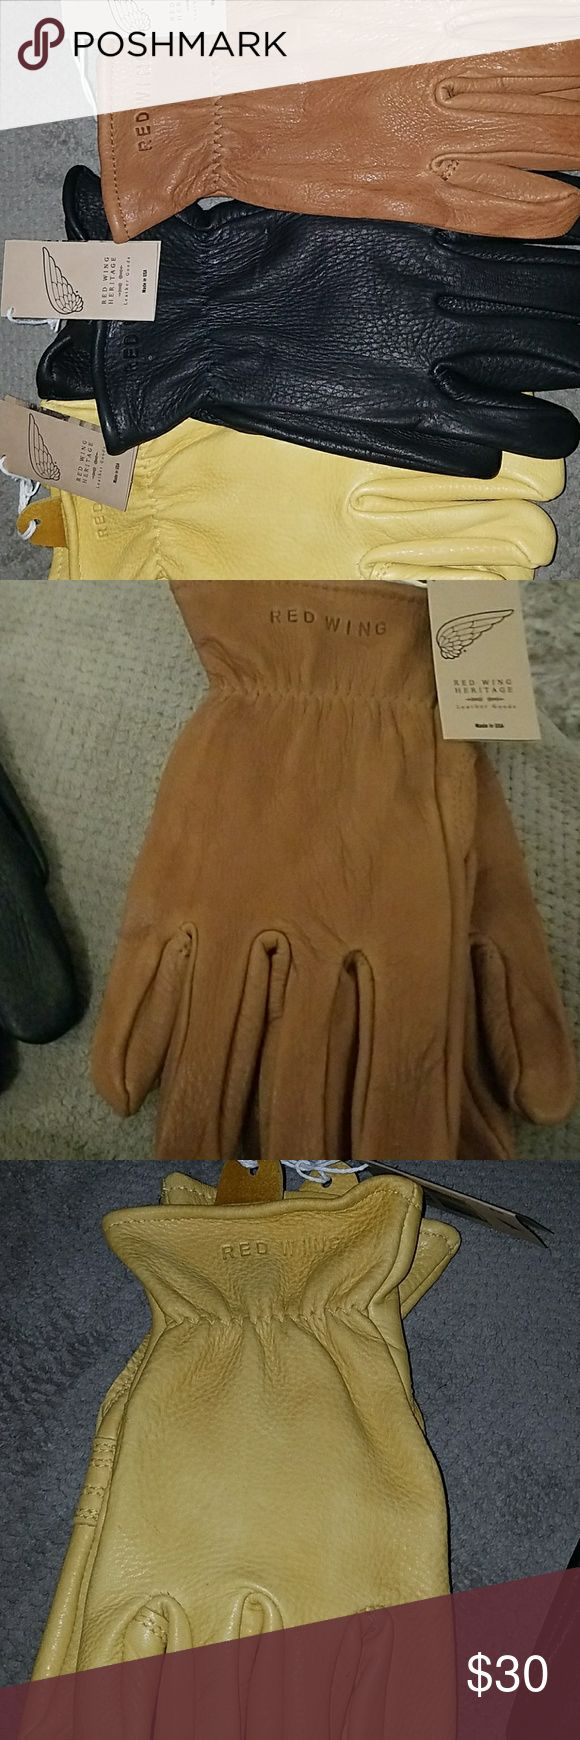 Red wing leather gloves Super nice leather gloves unisex Red Wing Shoes Accessories Gloves